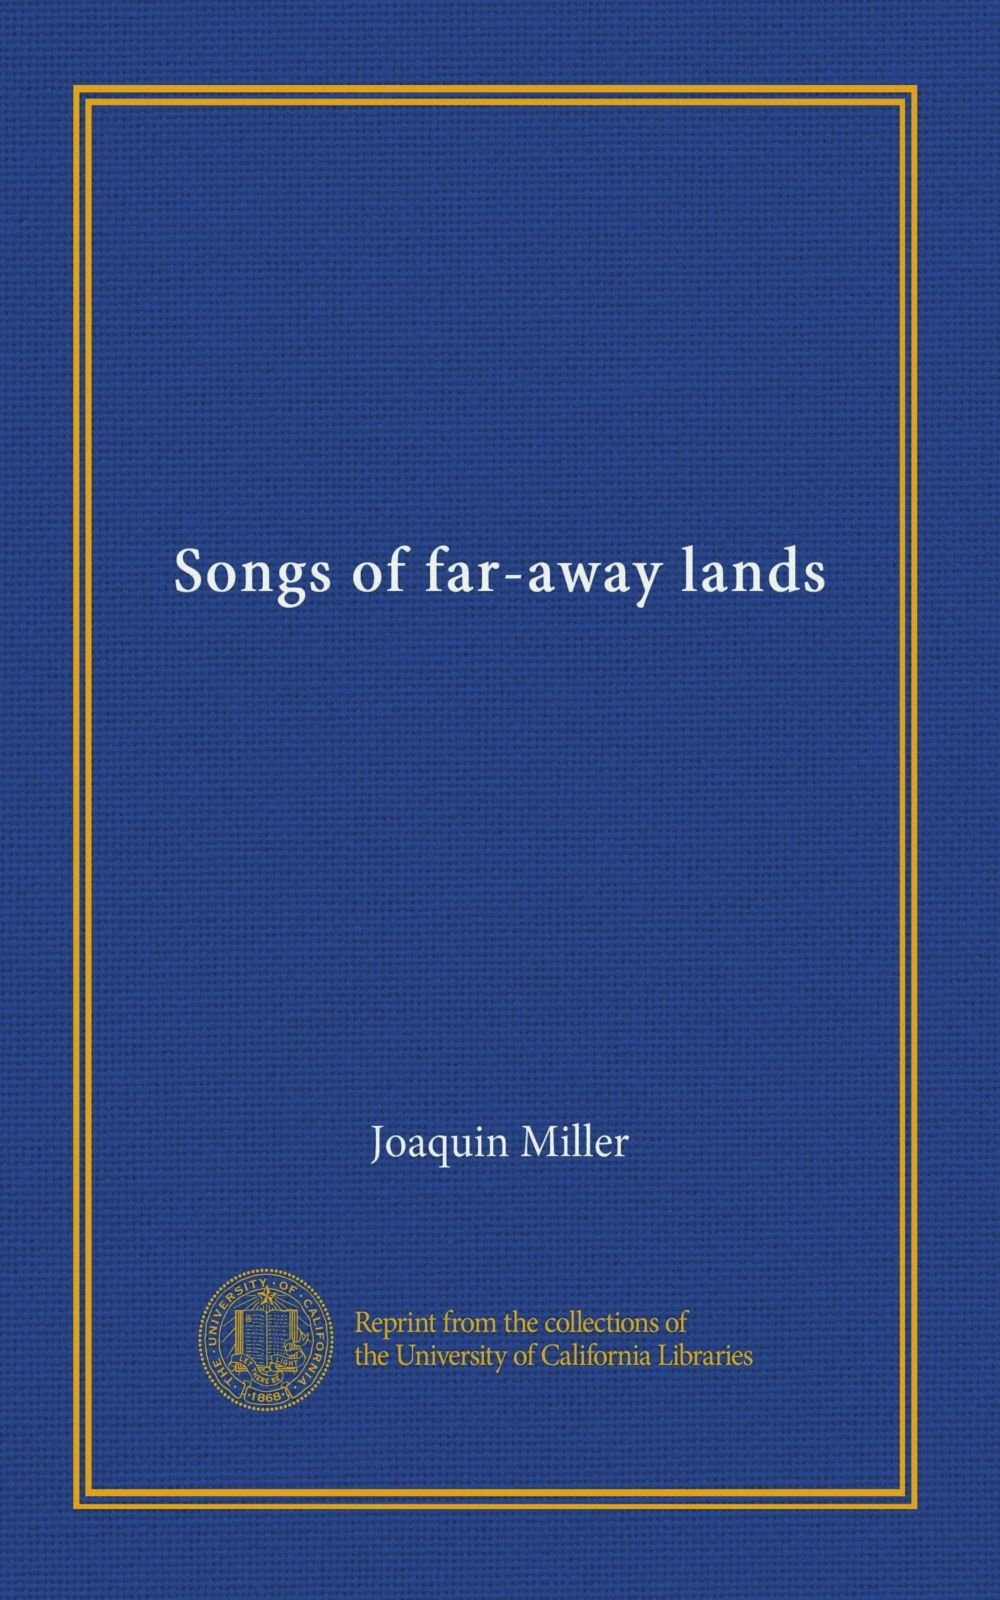 Songs of far-away lands pdf